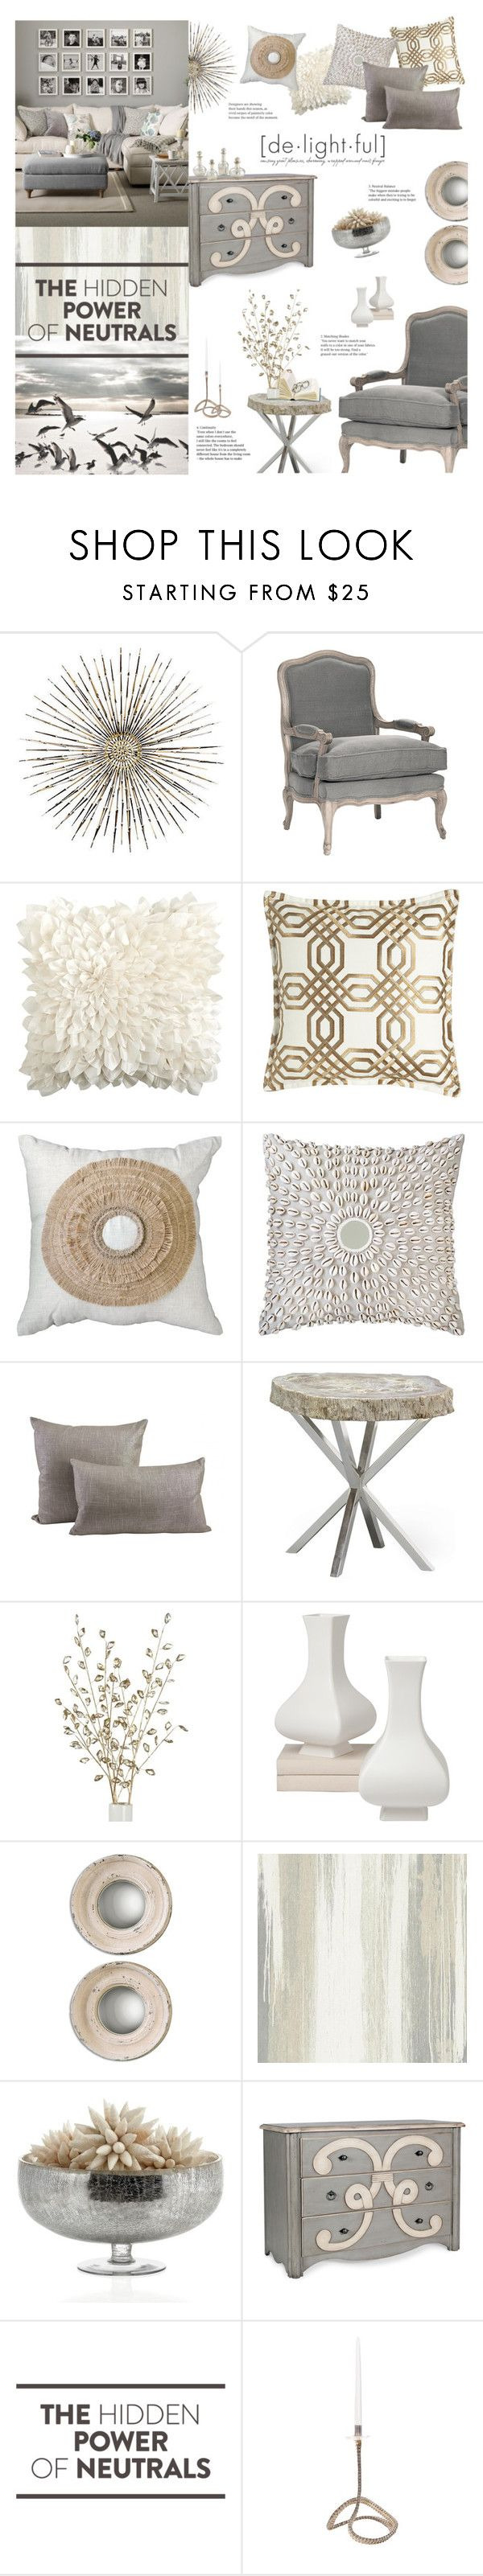 """Fade To Grey"" by happilyjynxed on Polyvore featuring interior, interiors, interior design, home, home decor, interior decorating, Frontgate, Pier 1 Imports, Bandhini Homewear Design and Jayson Home"